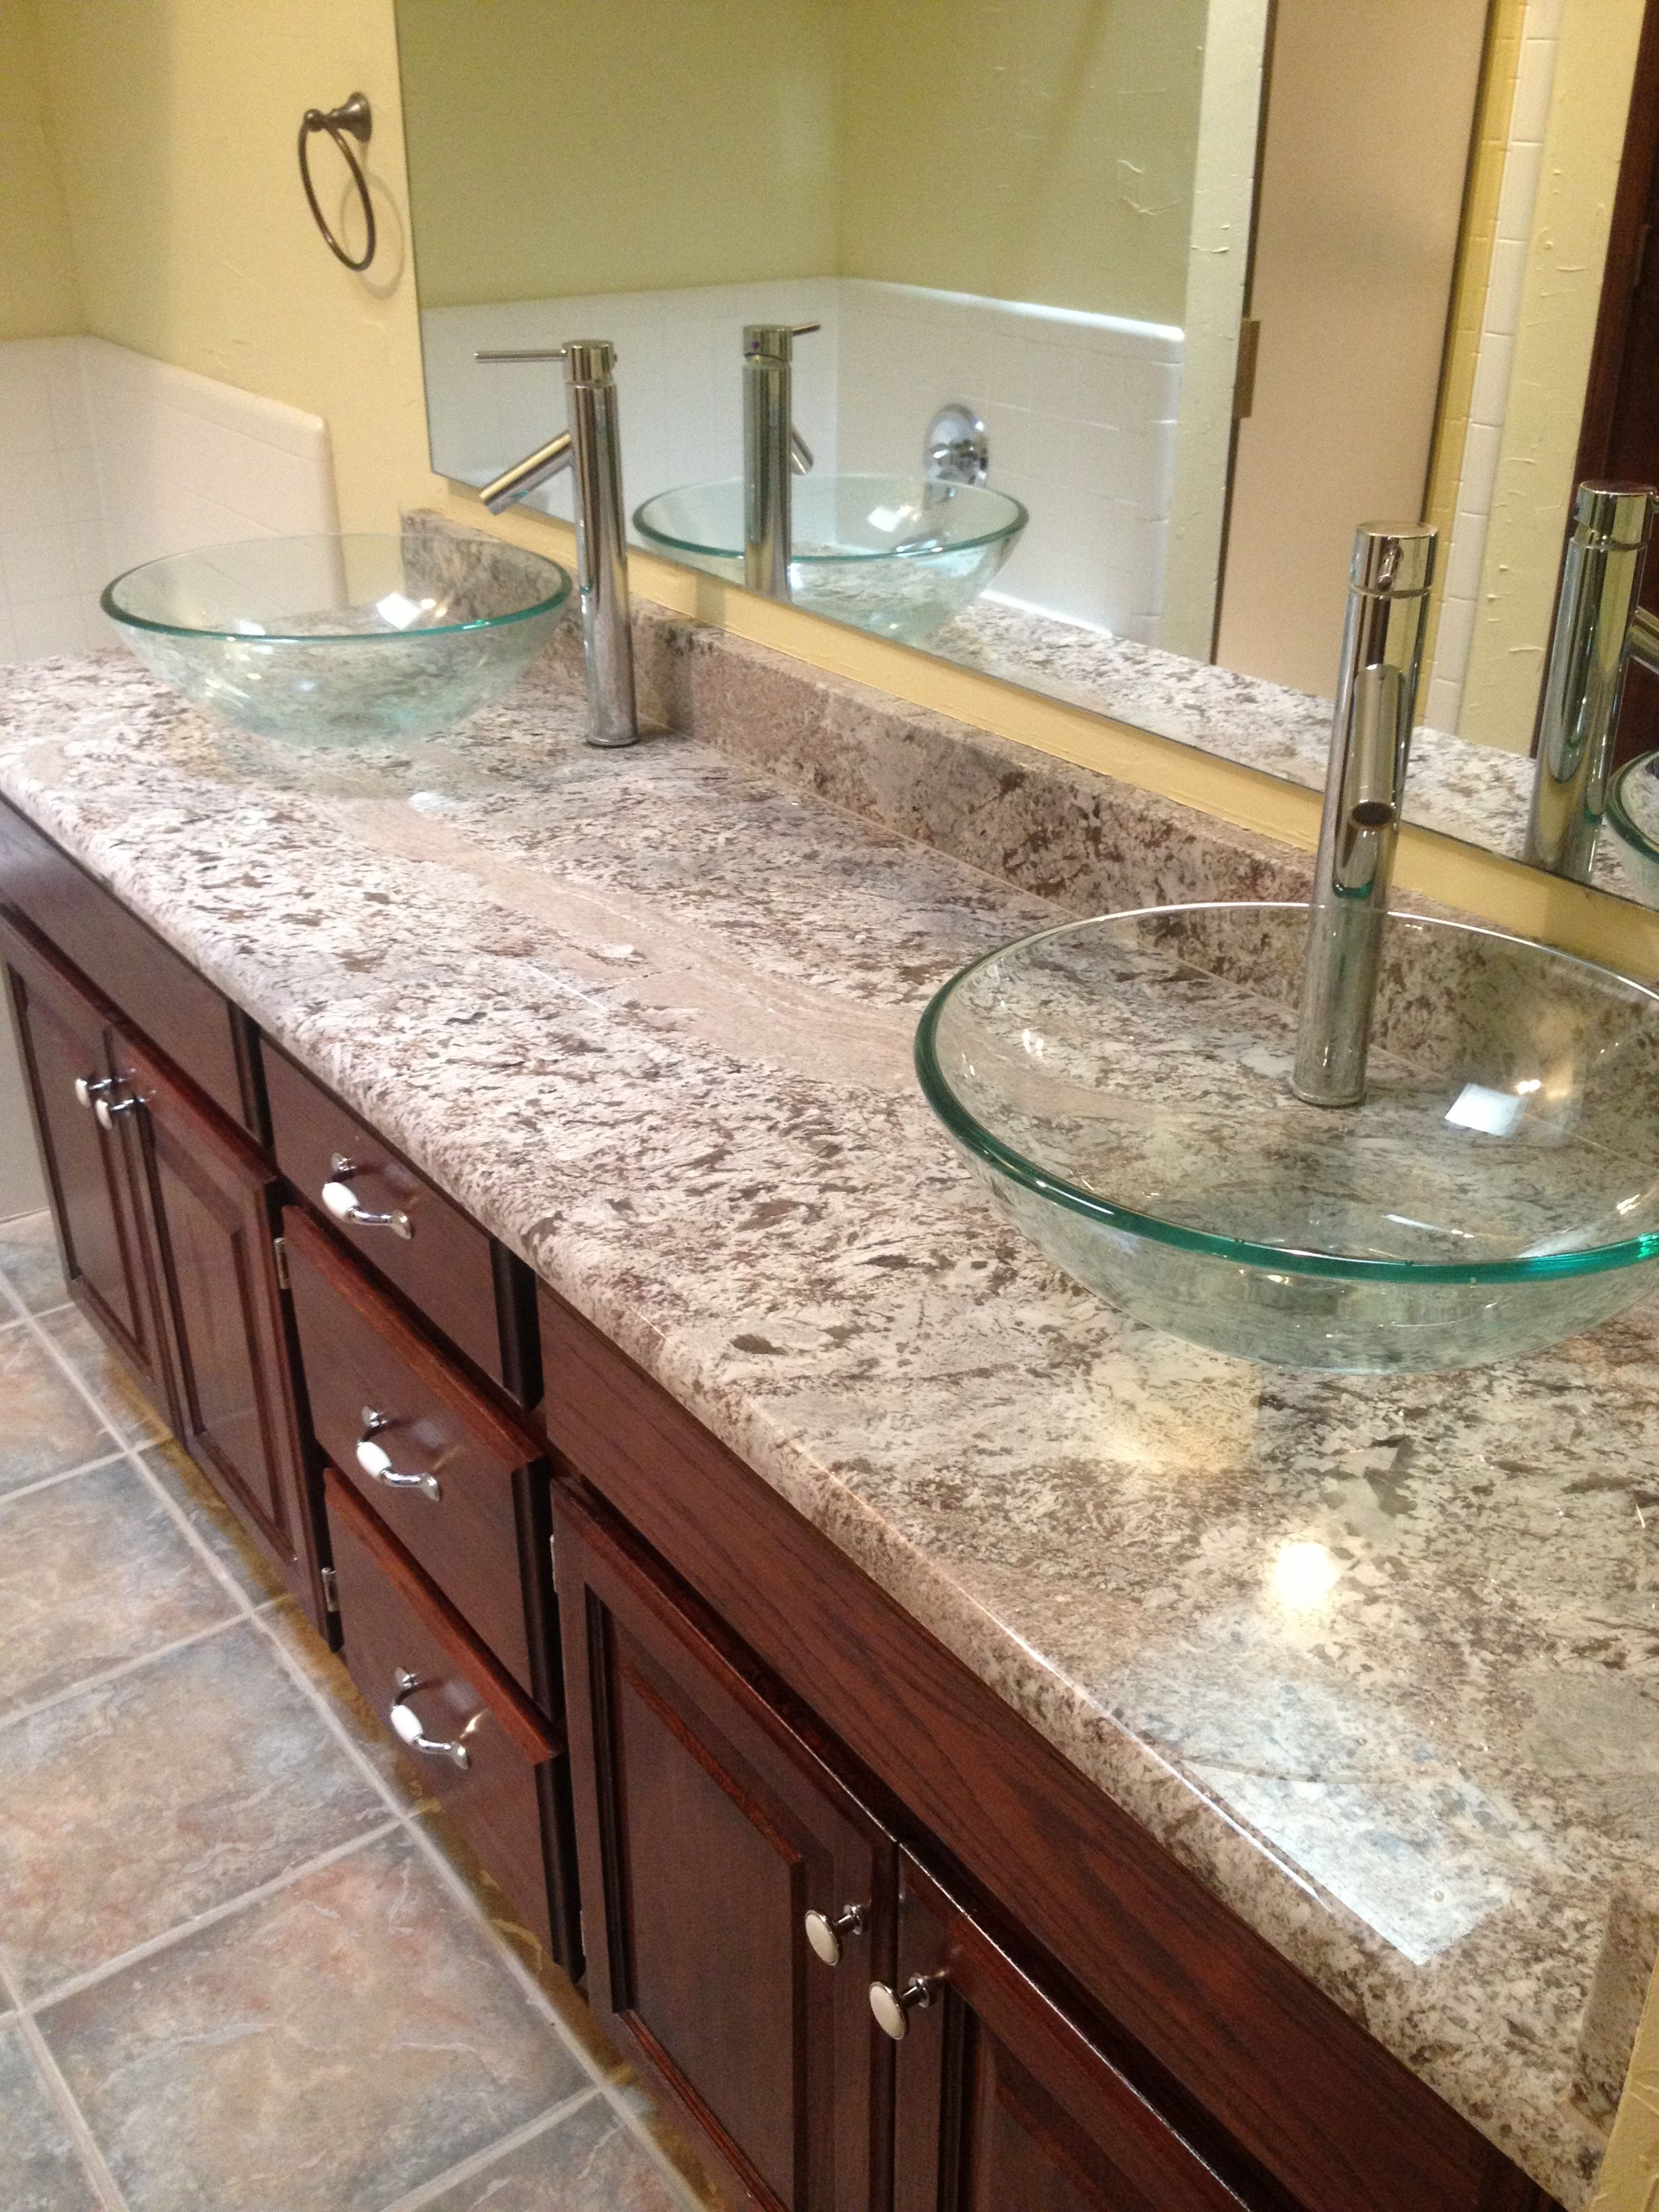 Bathroom Countertop Sinks Amp Faucets Idea For My Home